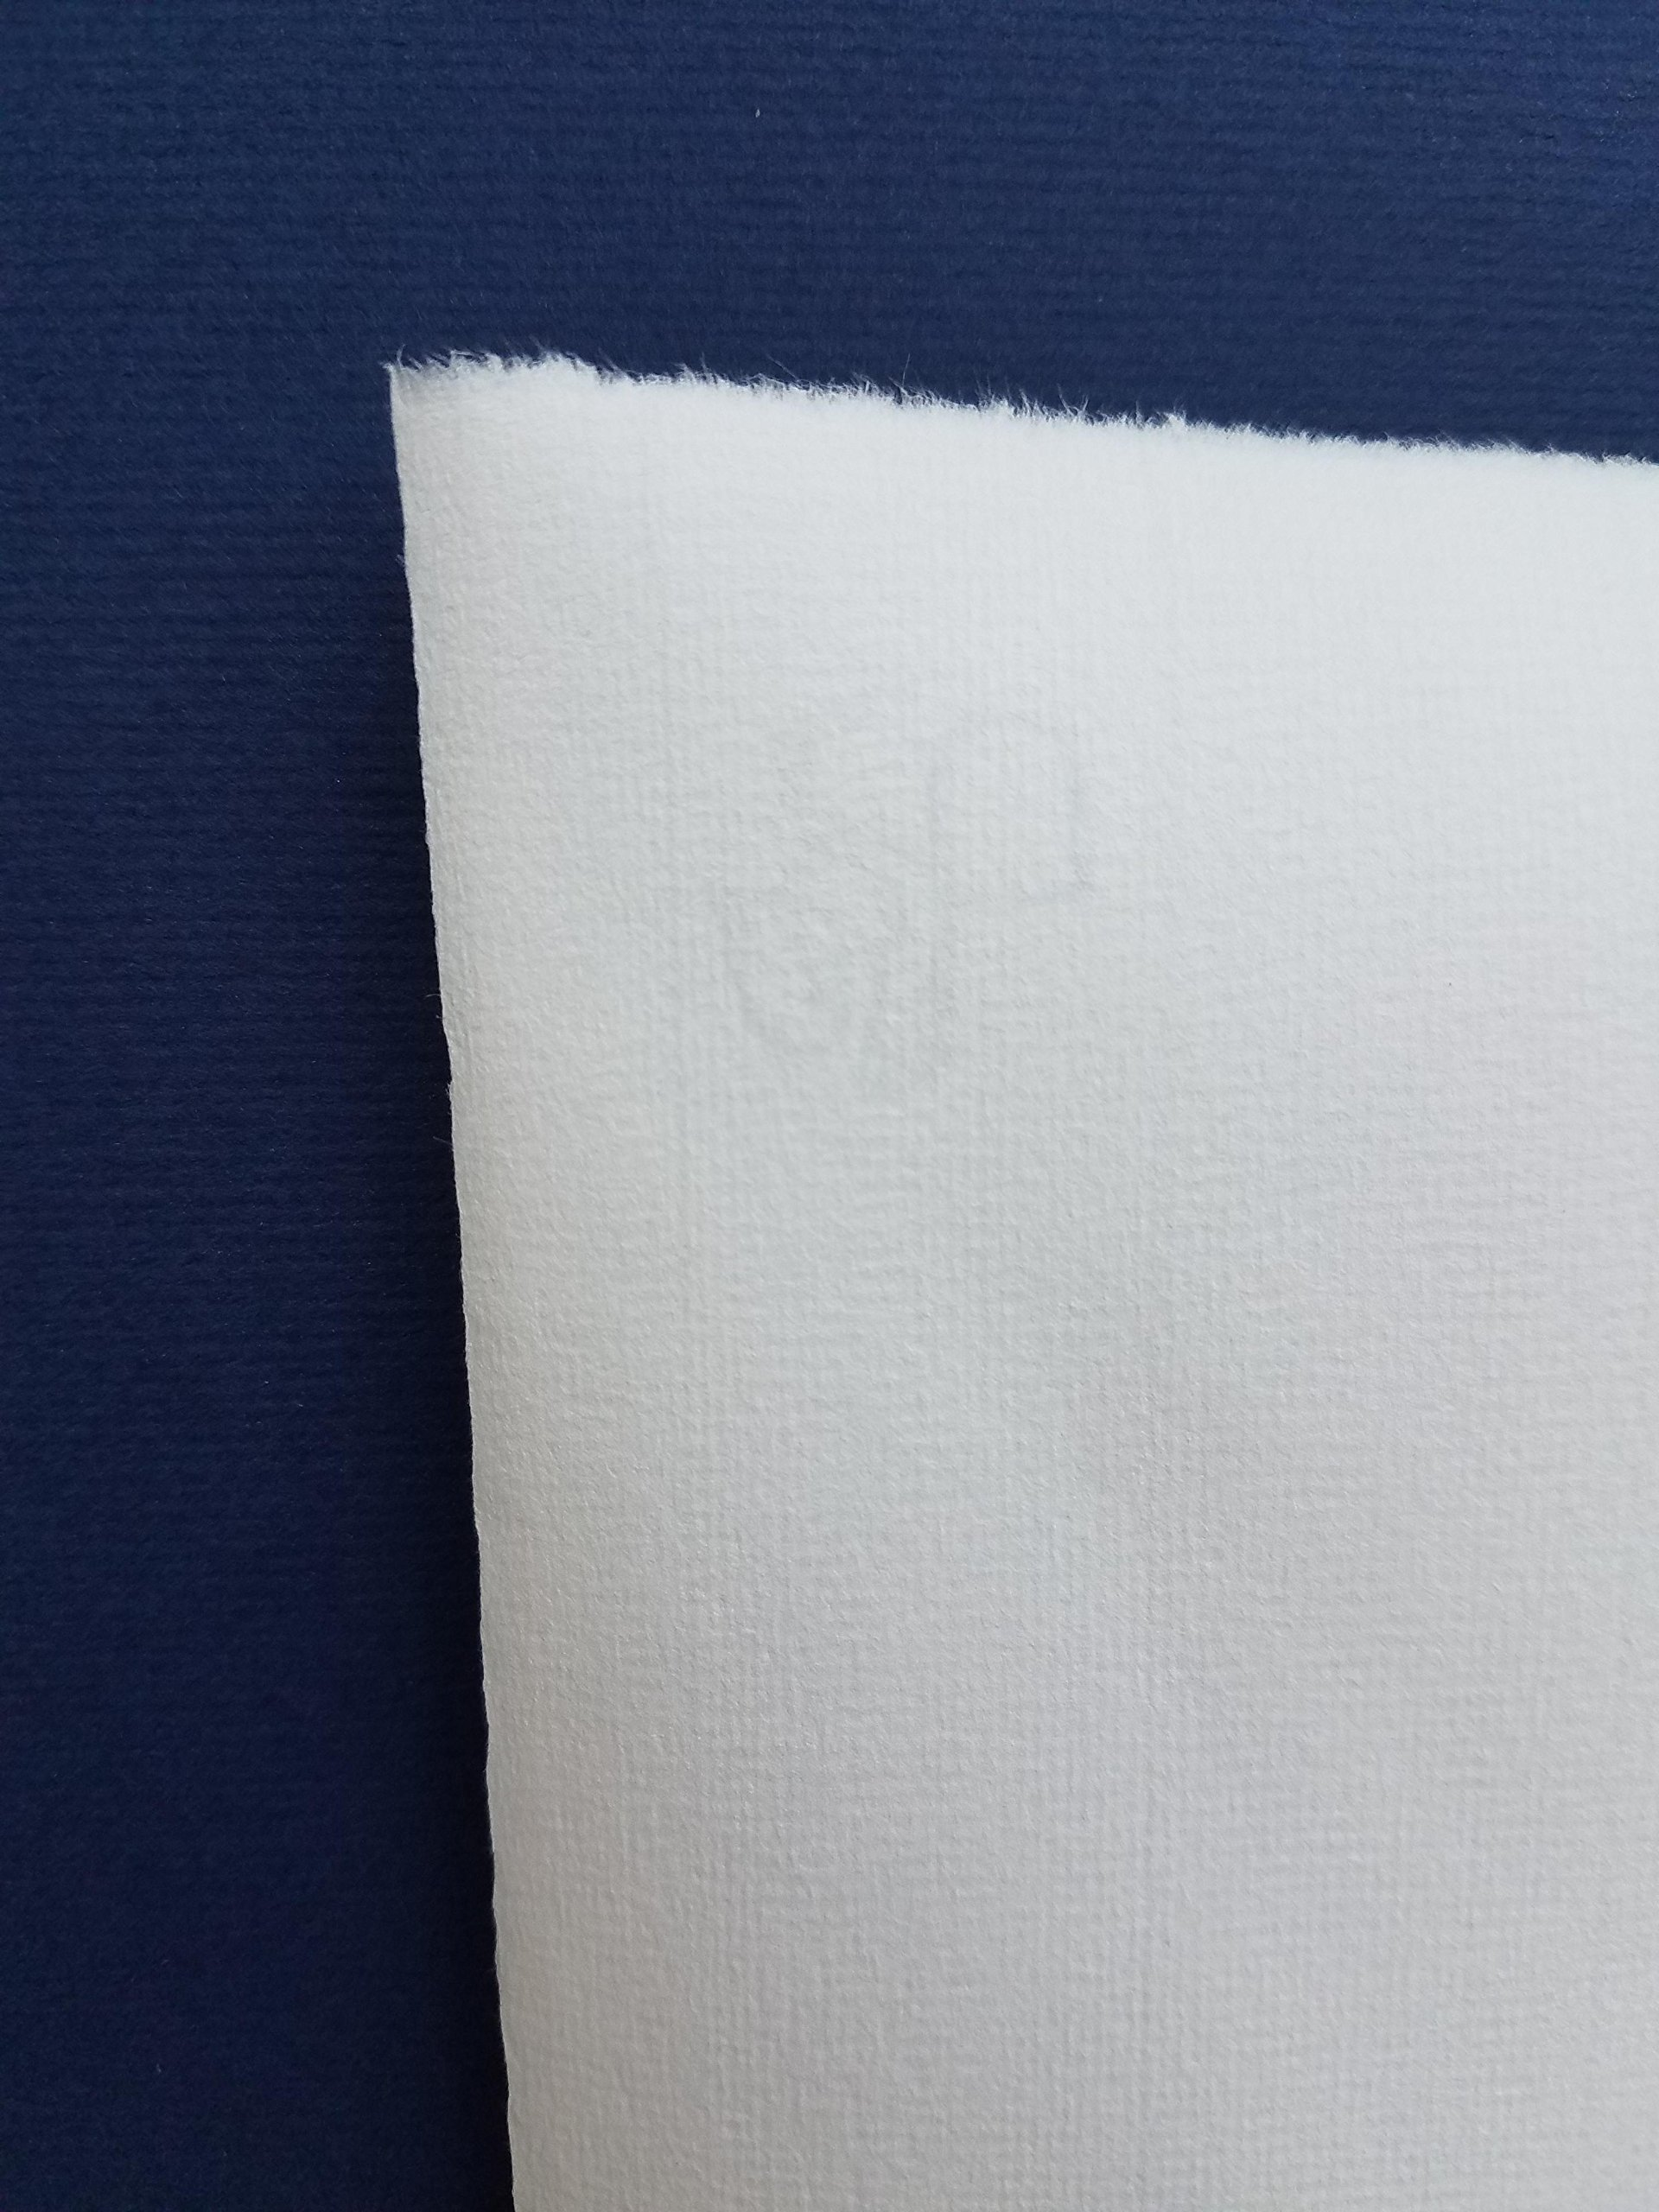 Hahnemuhle Ingres Paper, Bright White 130, 19'' X 25'', 100 gsm (25 Sheet Package) by Hahnemuhle Ingres Antique